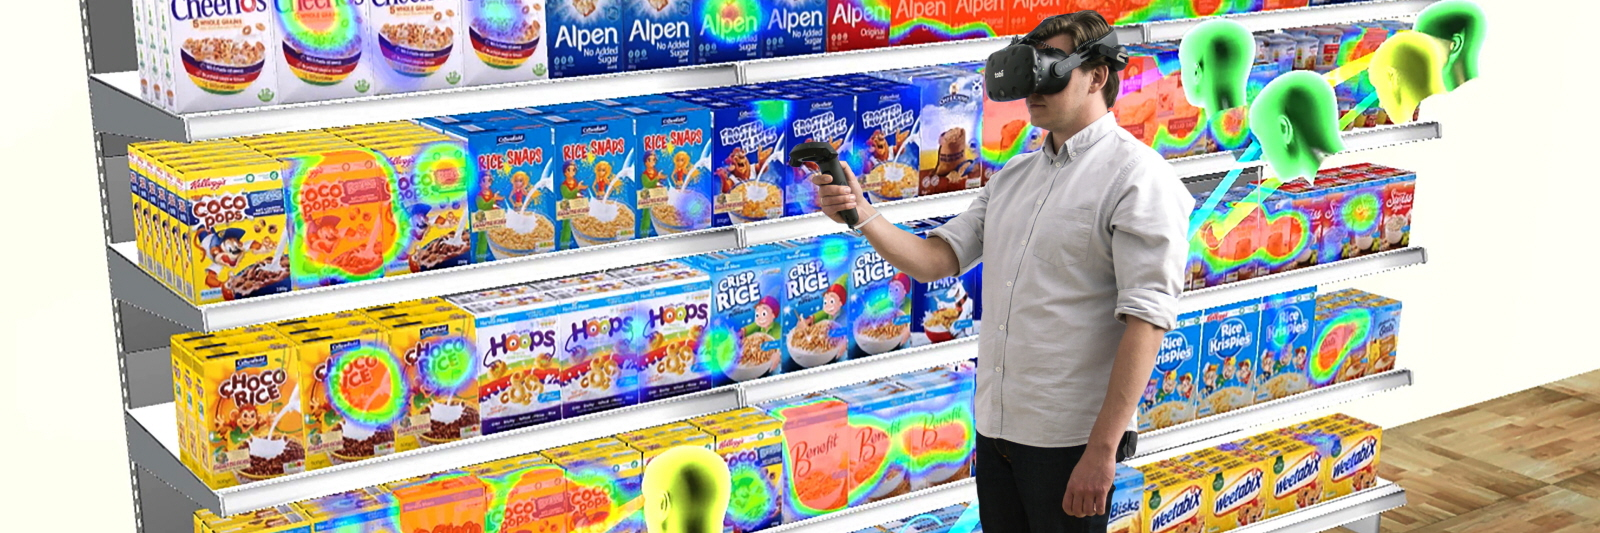 VR eye tracking supermarket headset